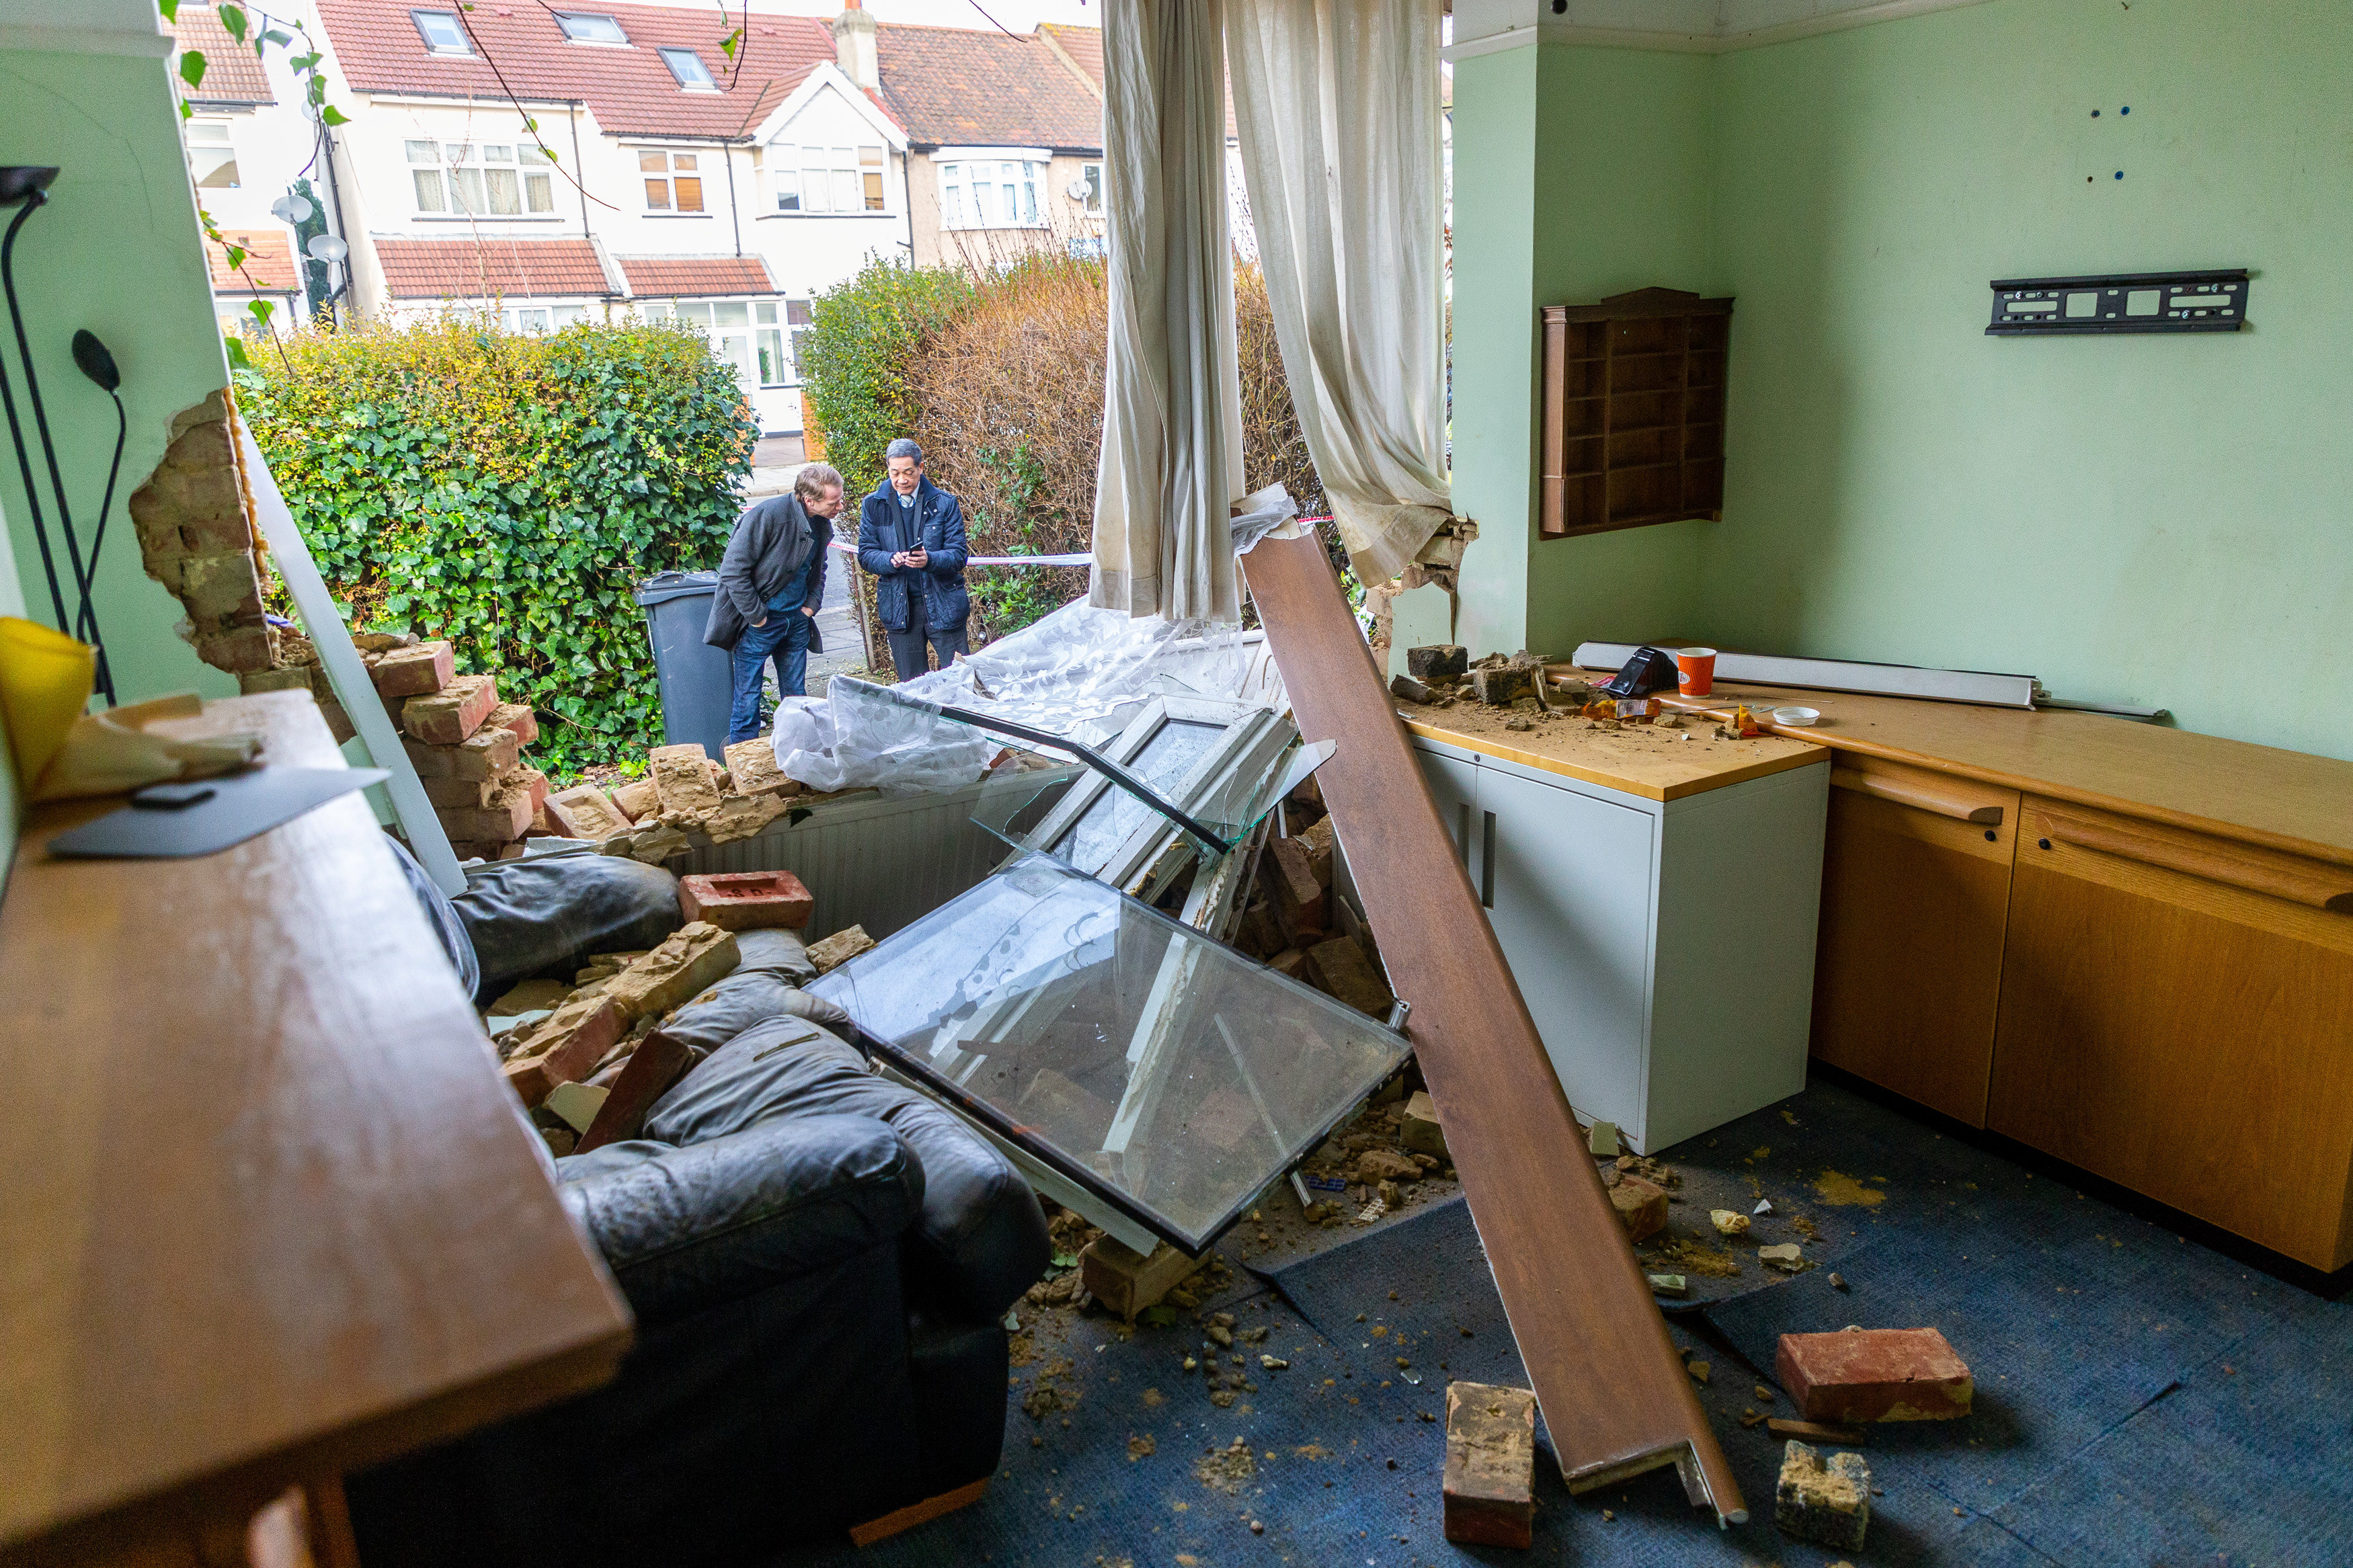 A house was left damaged in the incident. Credit SWNS